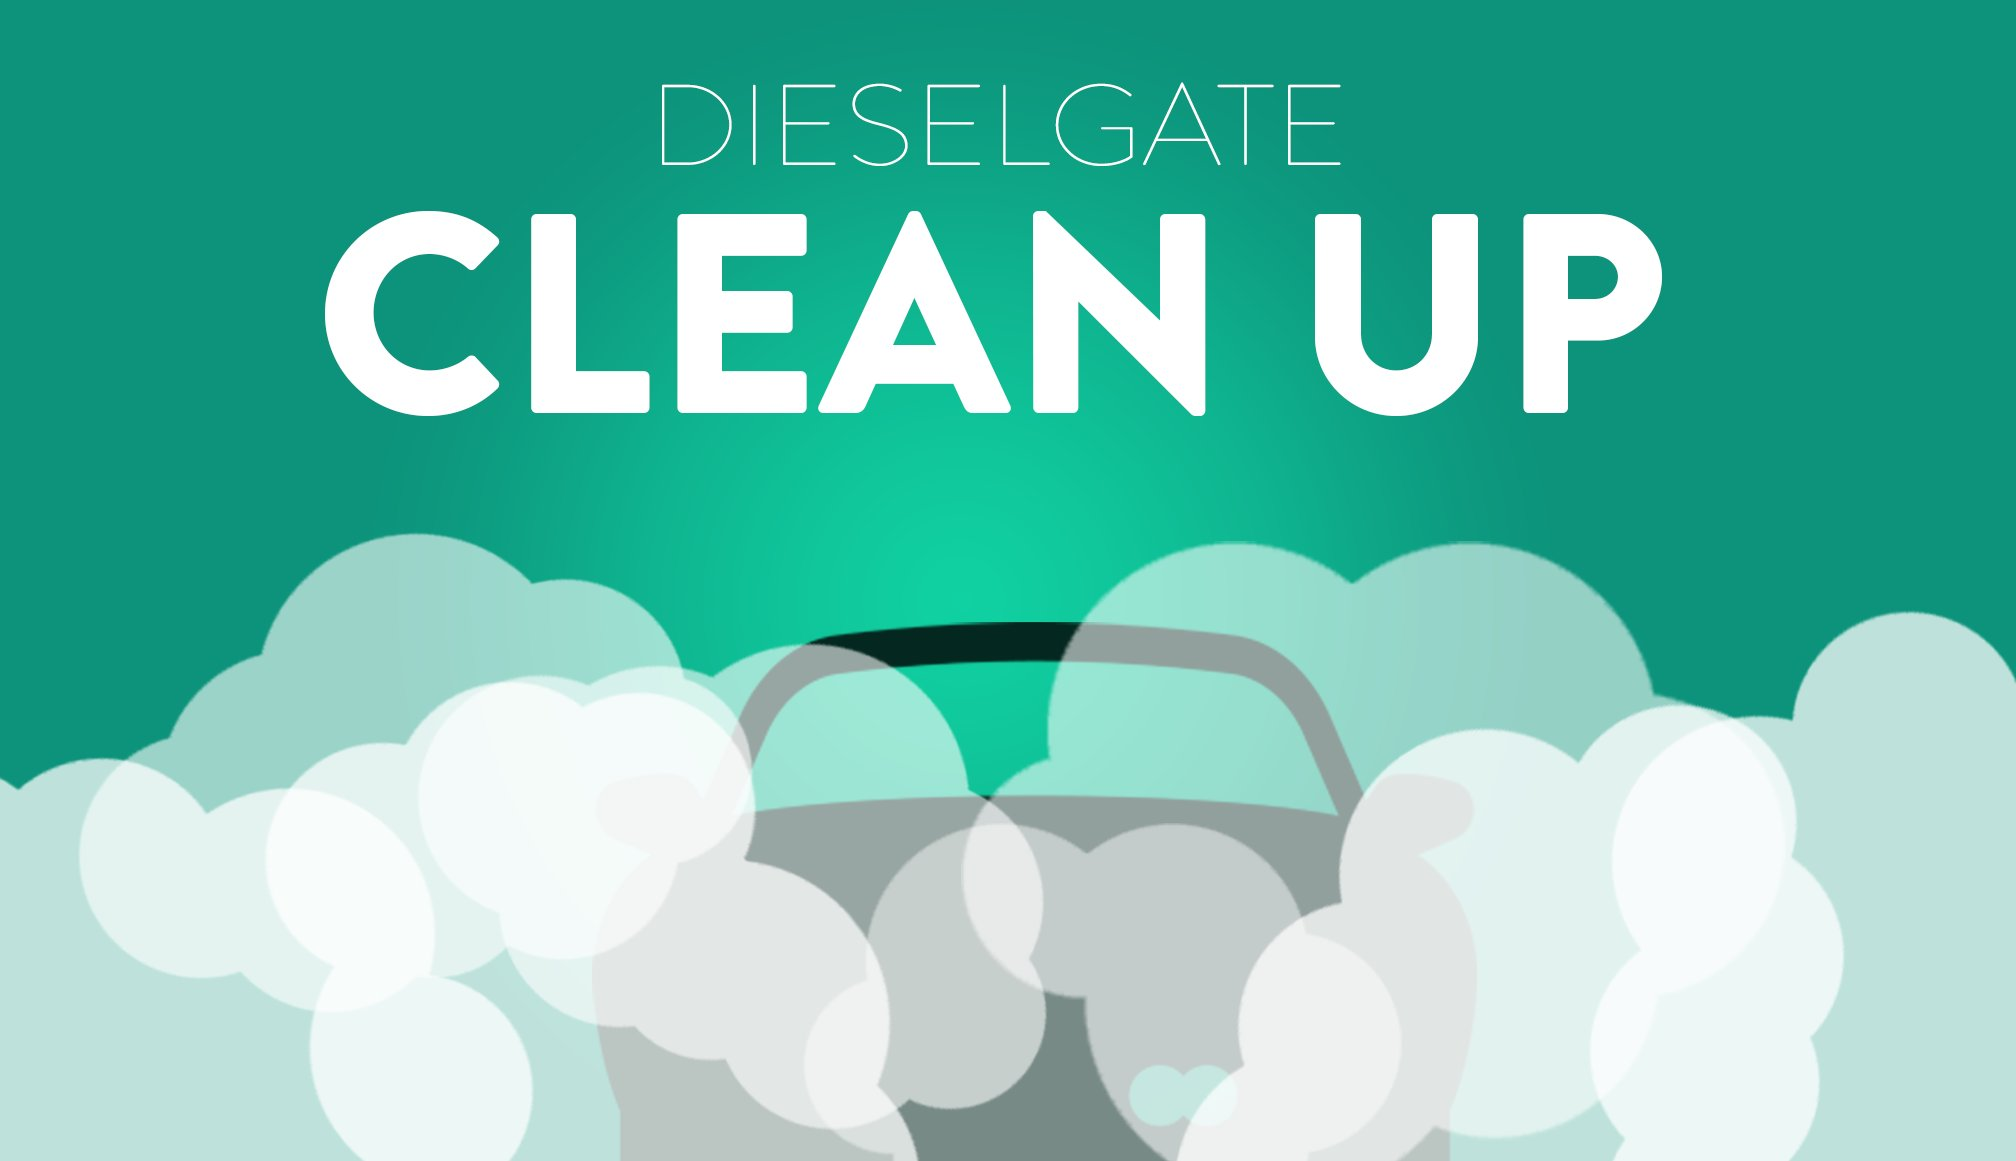 Dieselgate Clean Up, car fumes with green background